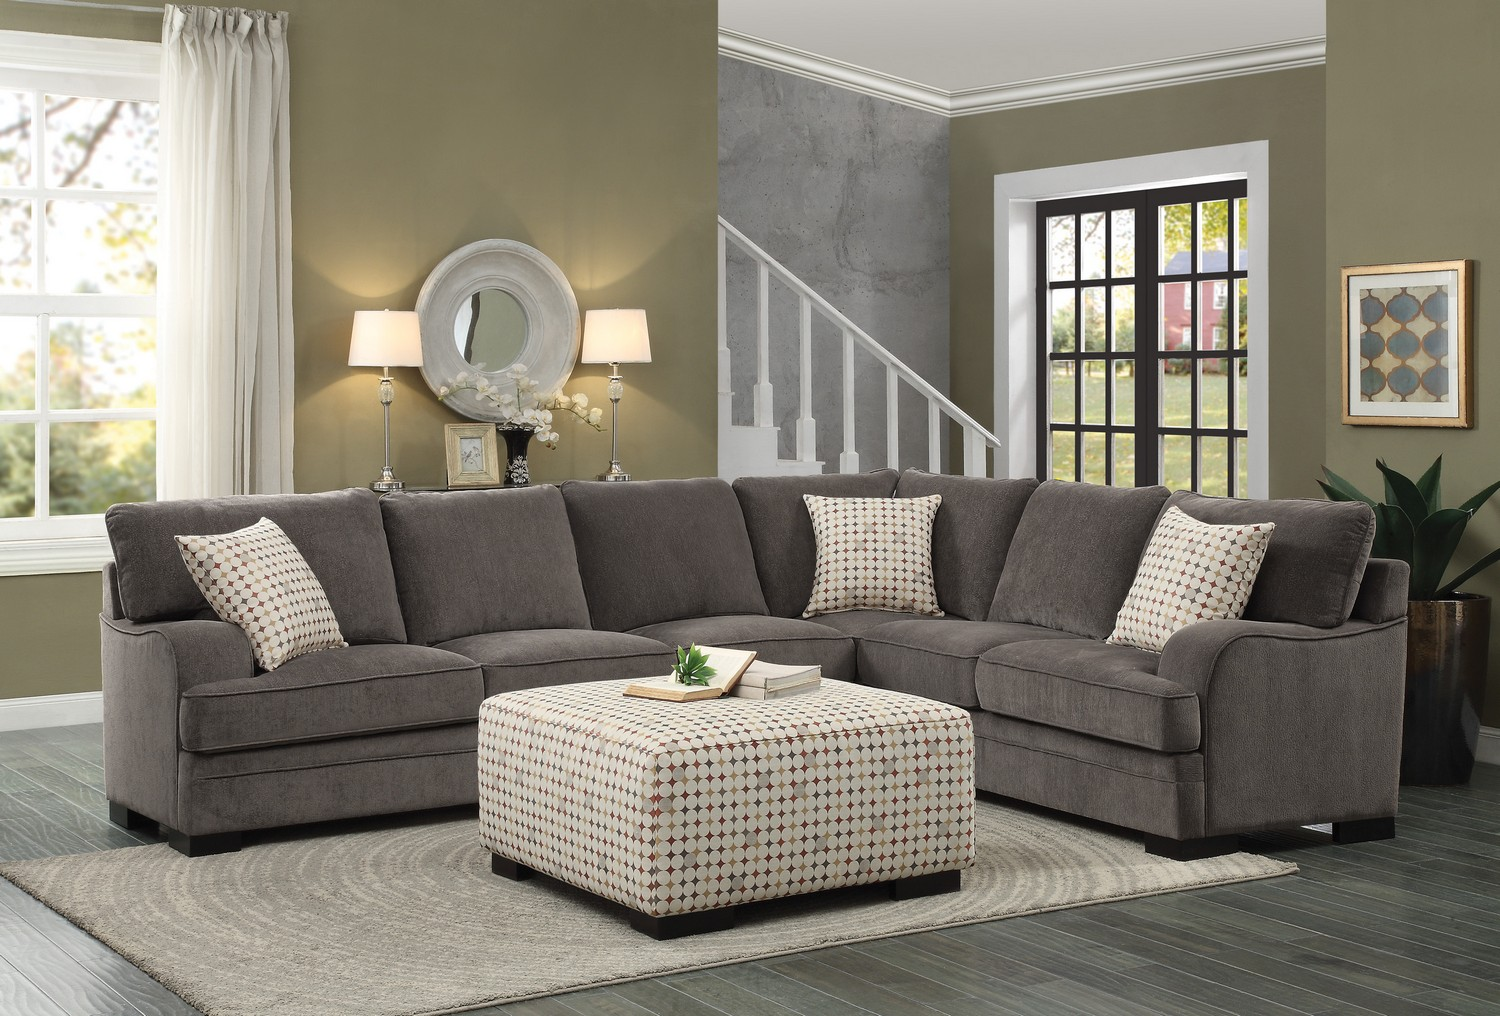 Homelegance Alamosa Sectional Sofa Set   Chenille   Brown